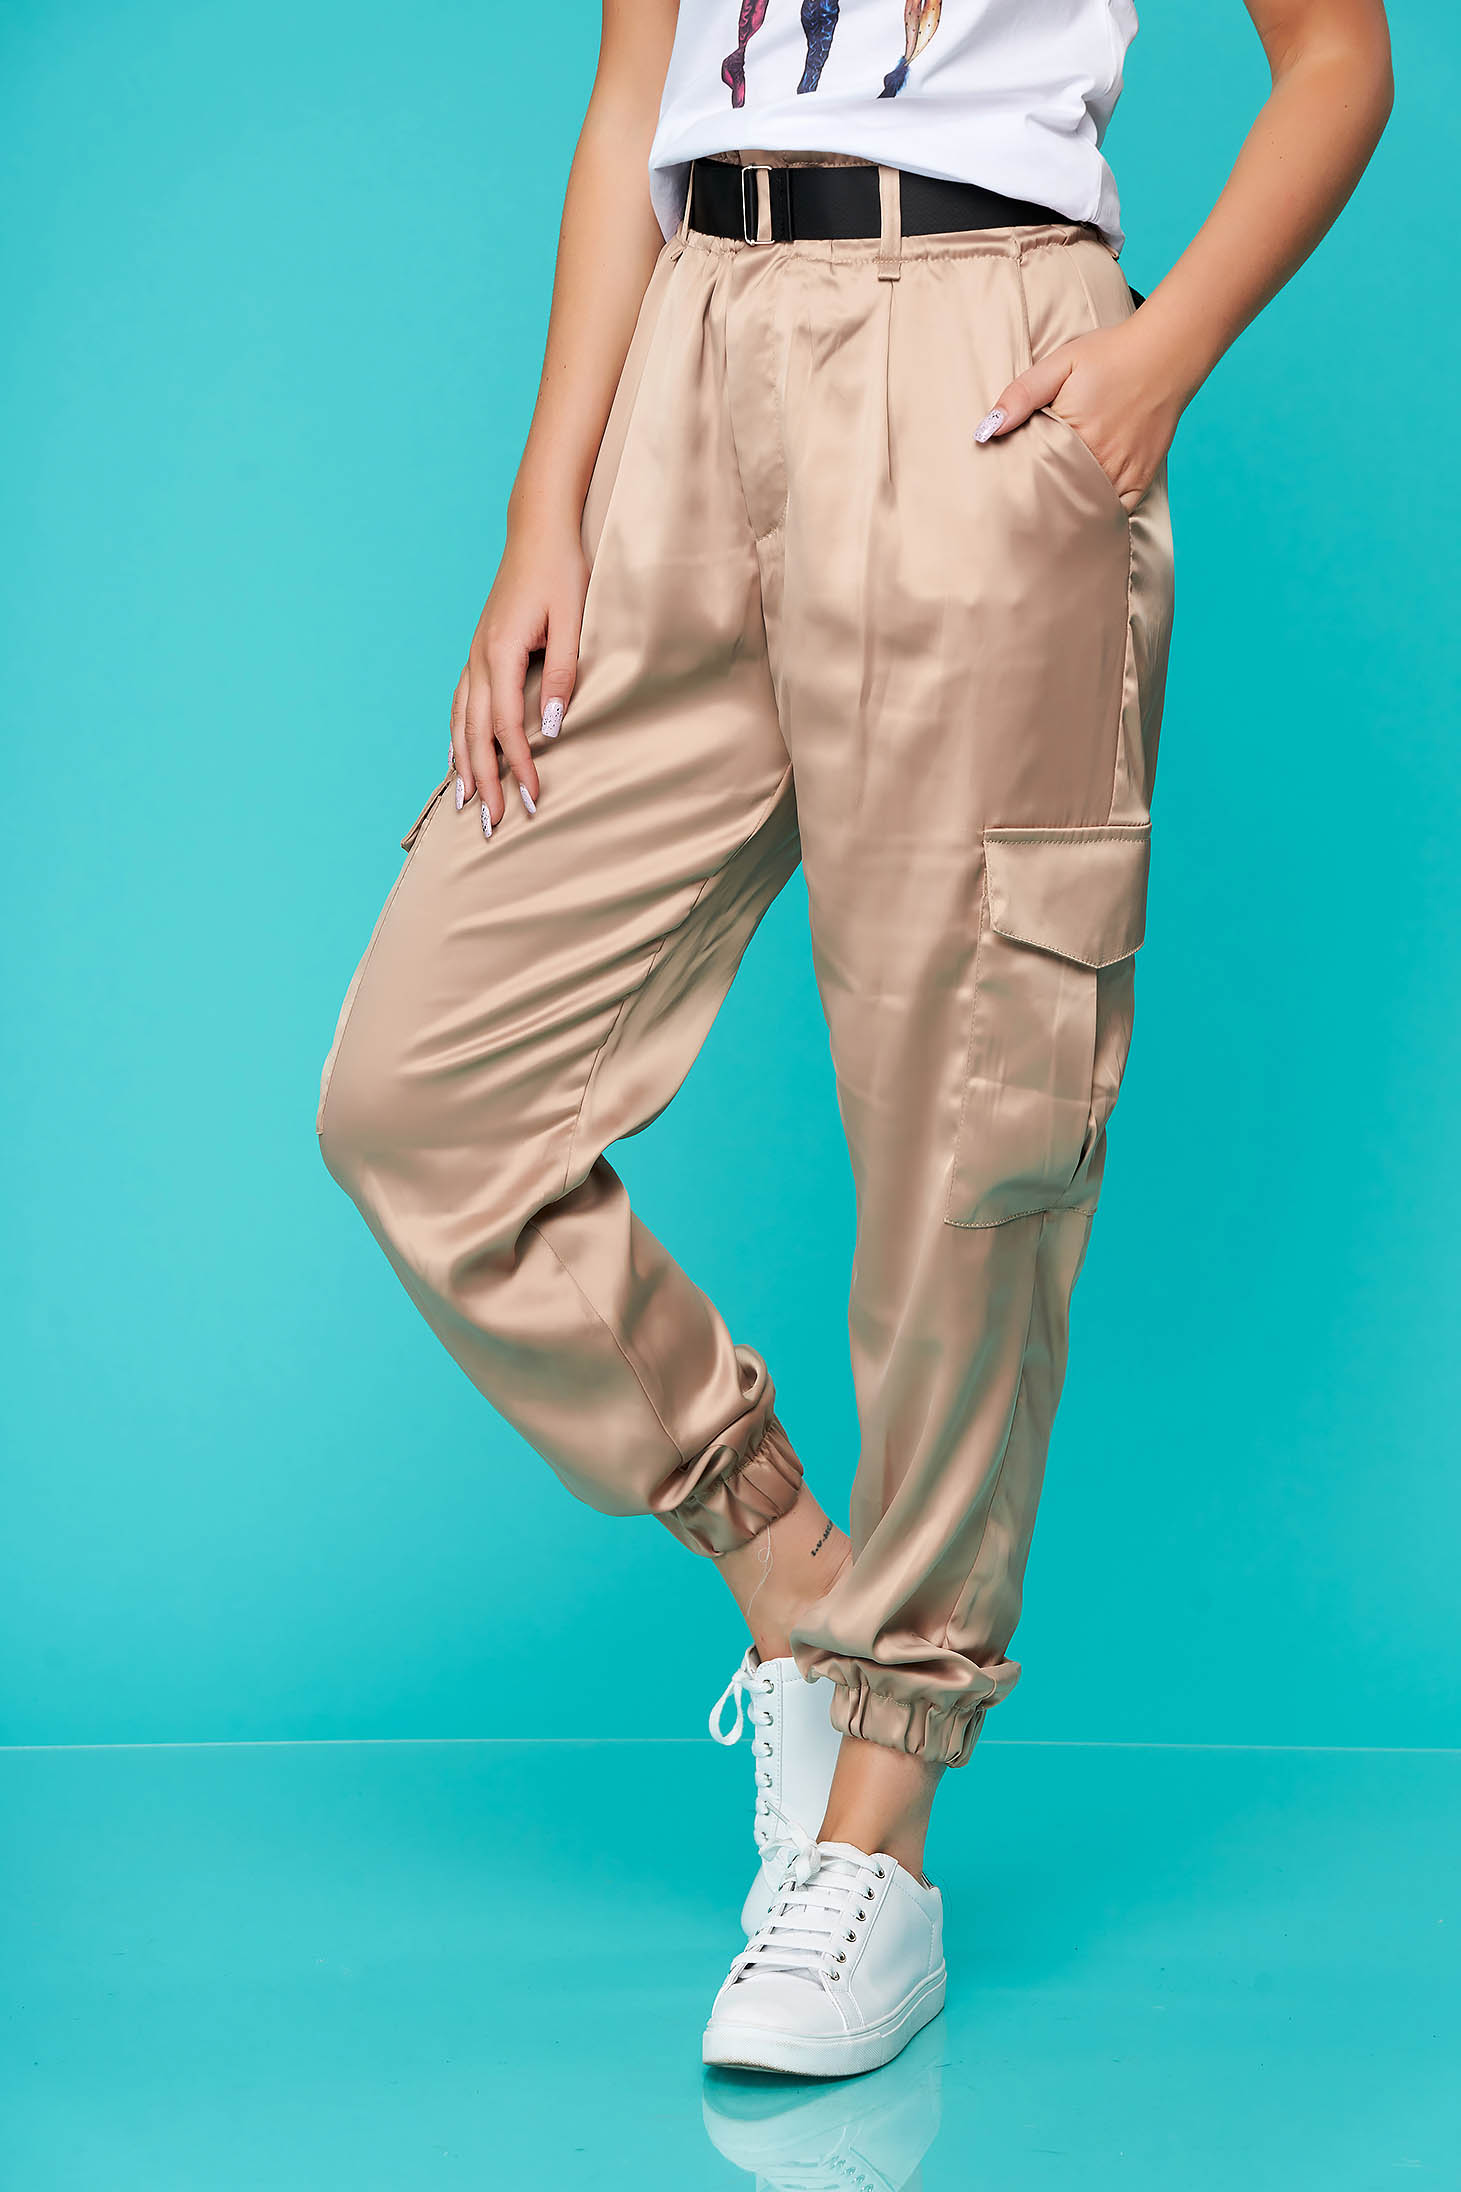 Cream casual conical trousers from satin with pockets accessorized with belt